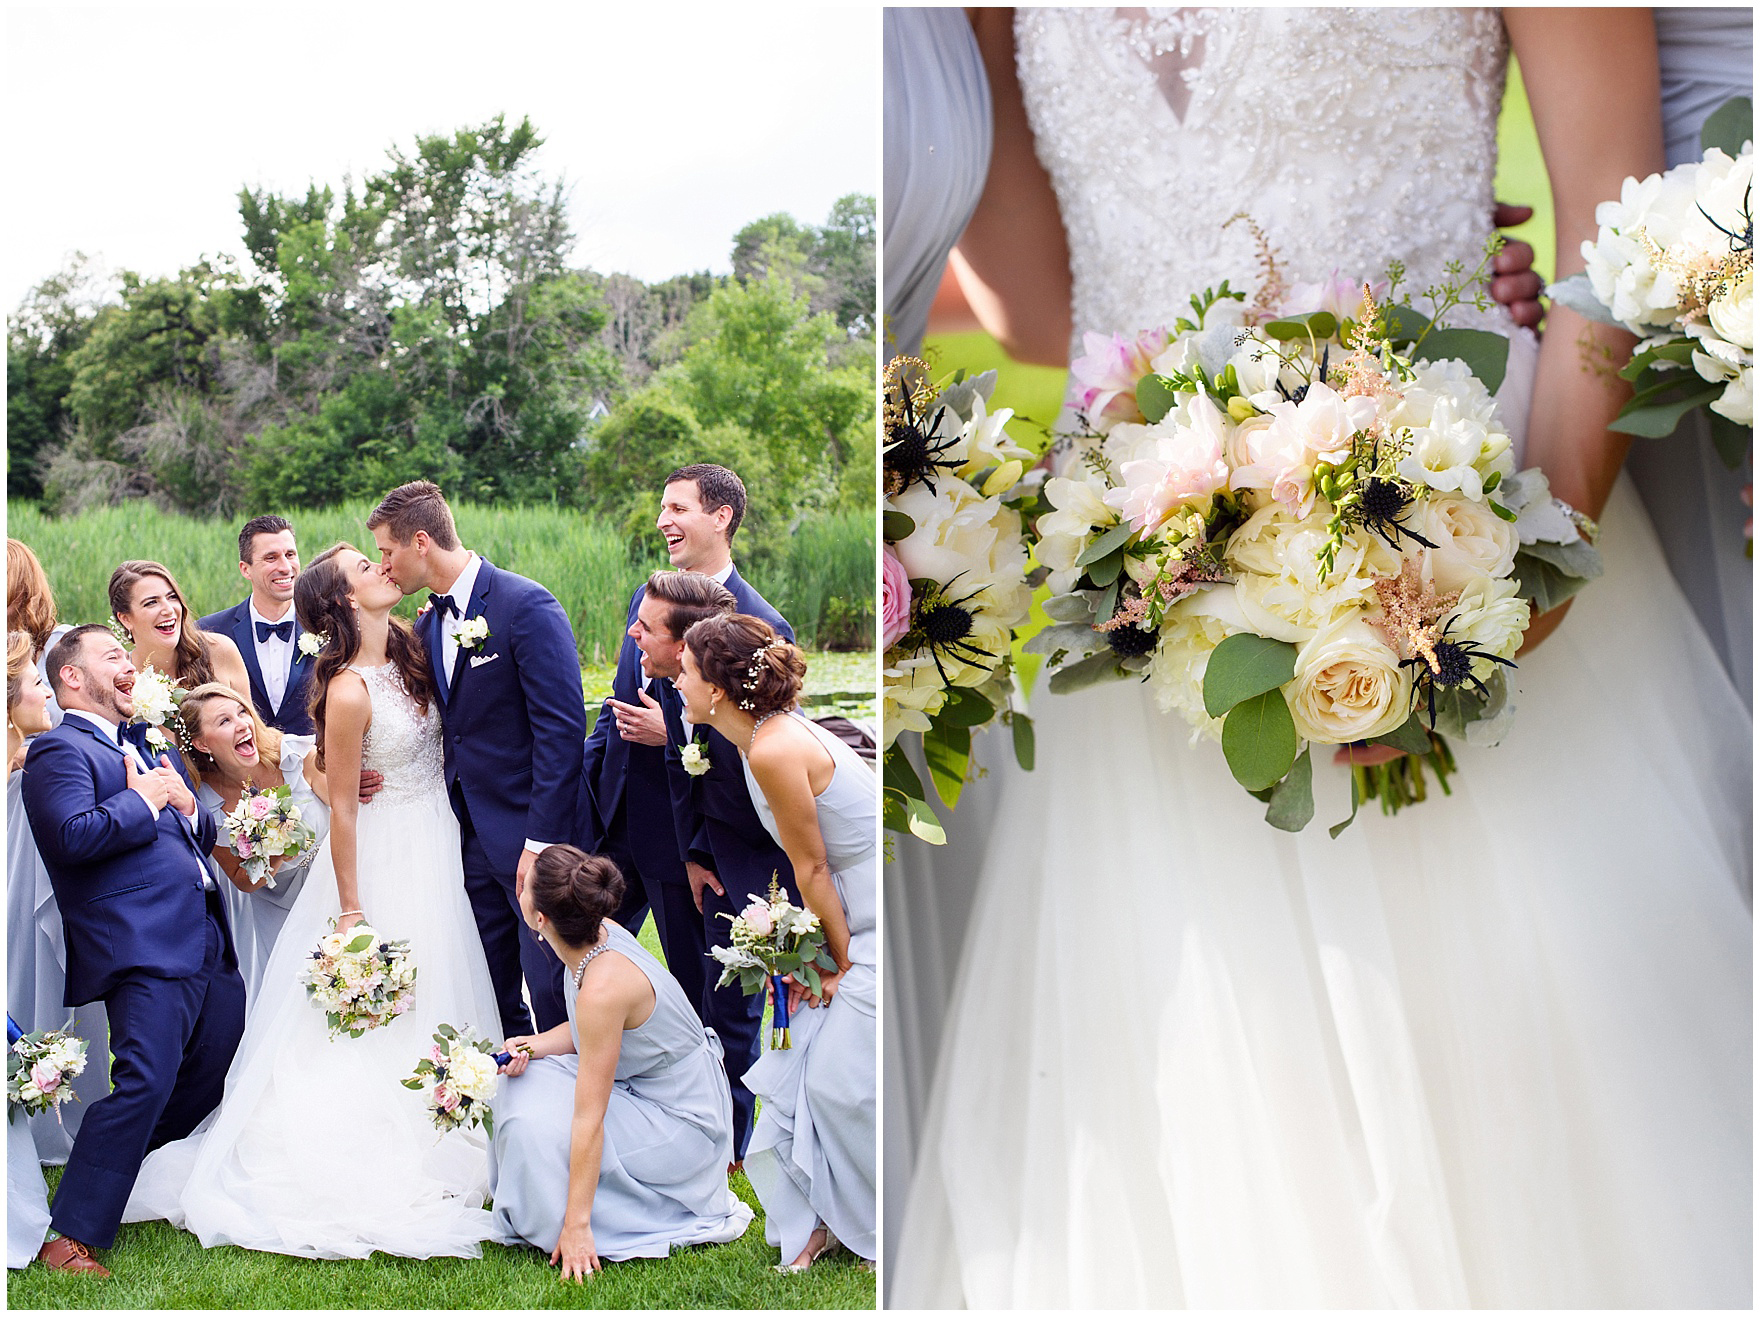 Details of a bridal bouquet by Countryside Flower Shop during a Biltmore Country Club Barrington wedding.